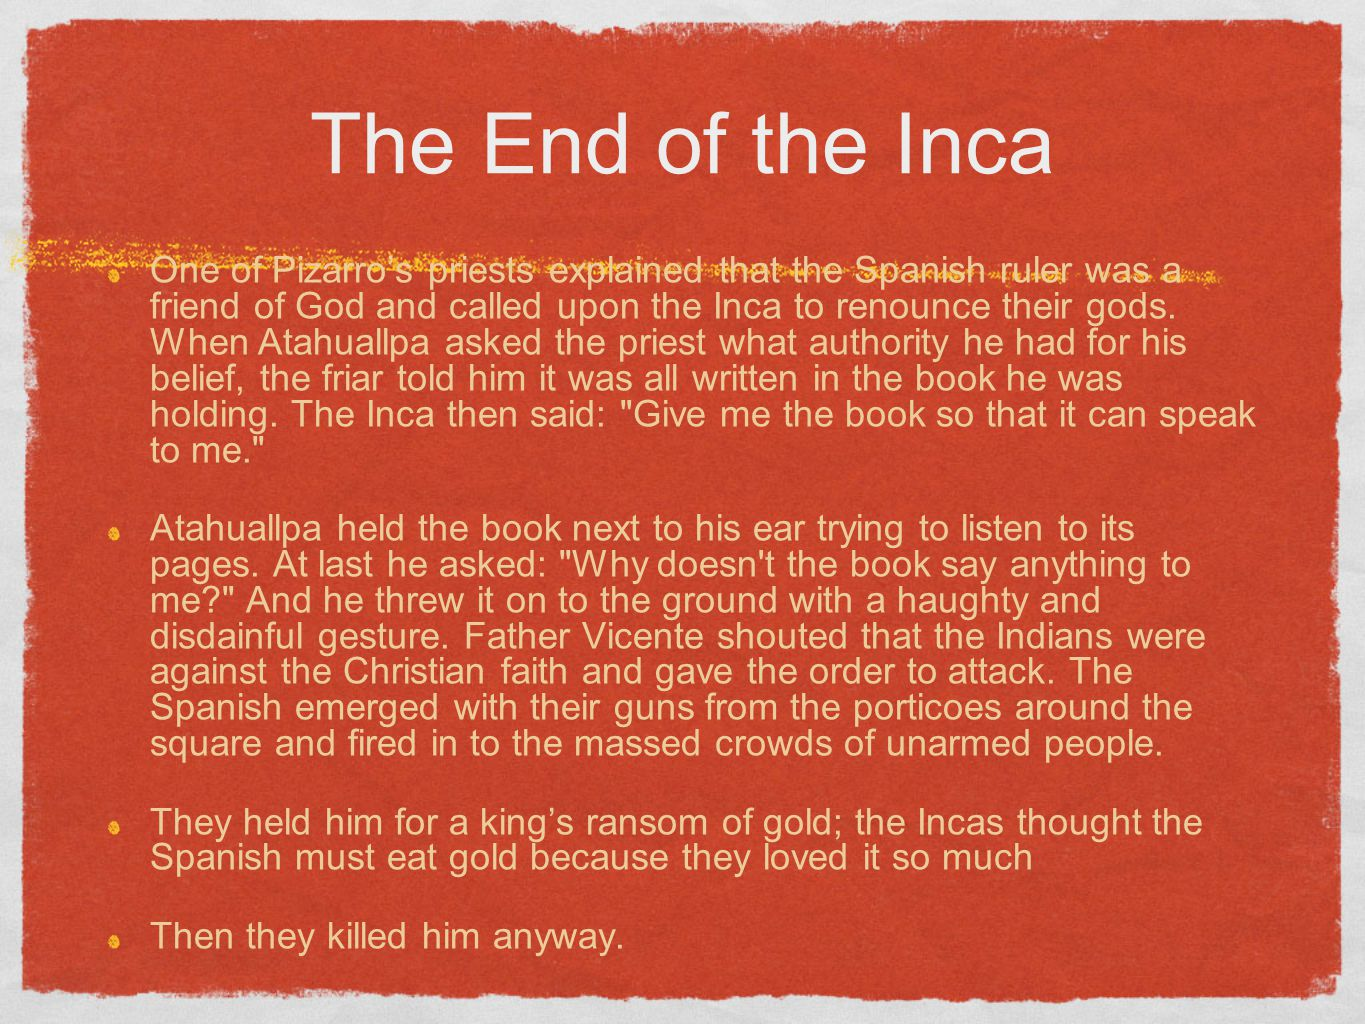 The End of the Inca